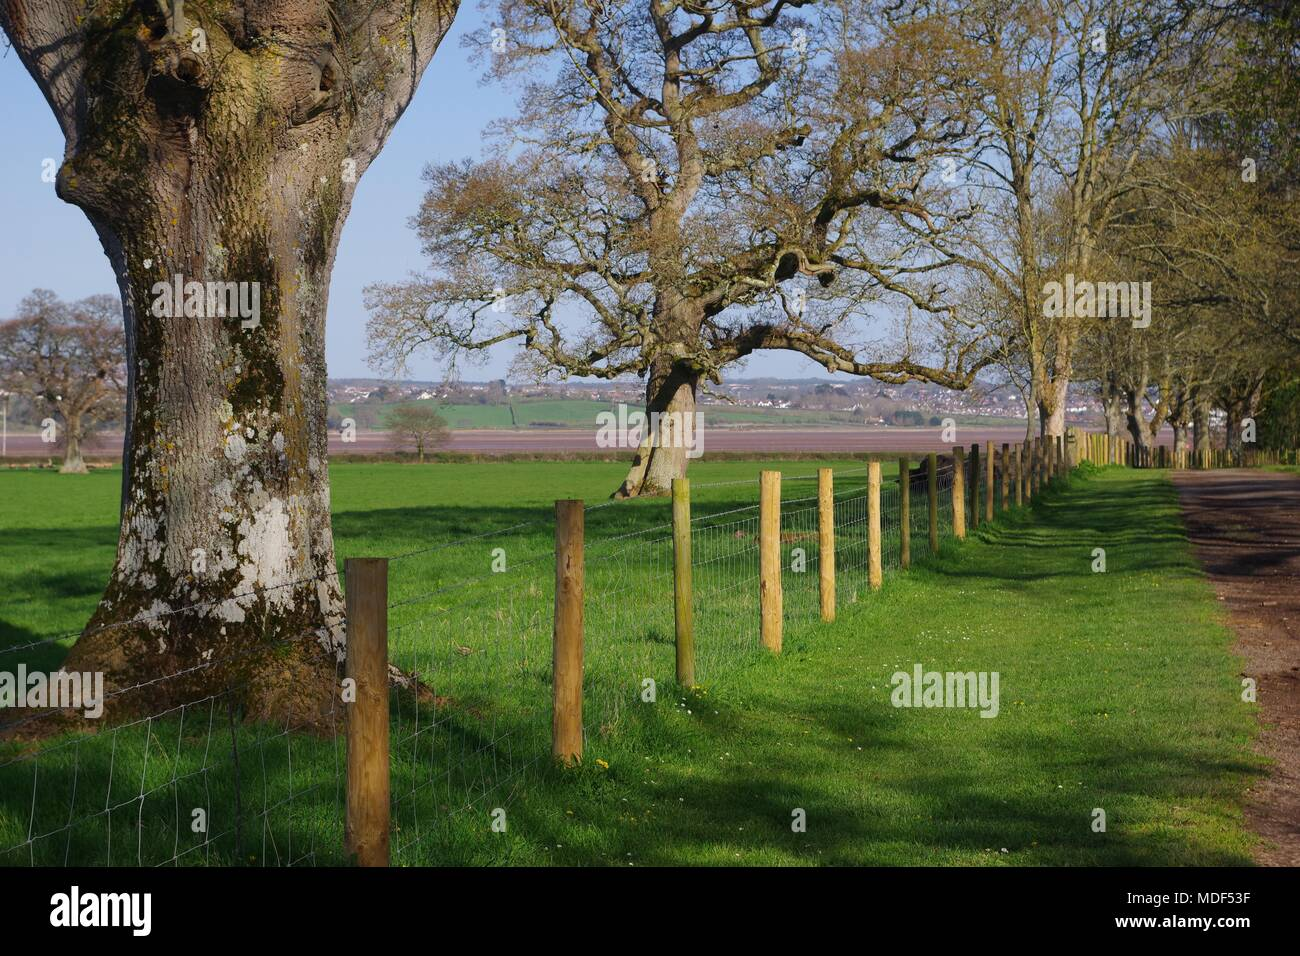 Mature Leafless English Oak Trees in a Vibrant Pasture Filed by a Wire Fence, Devon Farmland. Powderham Estate, Exeter, Devon, UK. April, 2018. - Stock Image